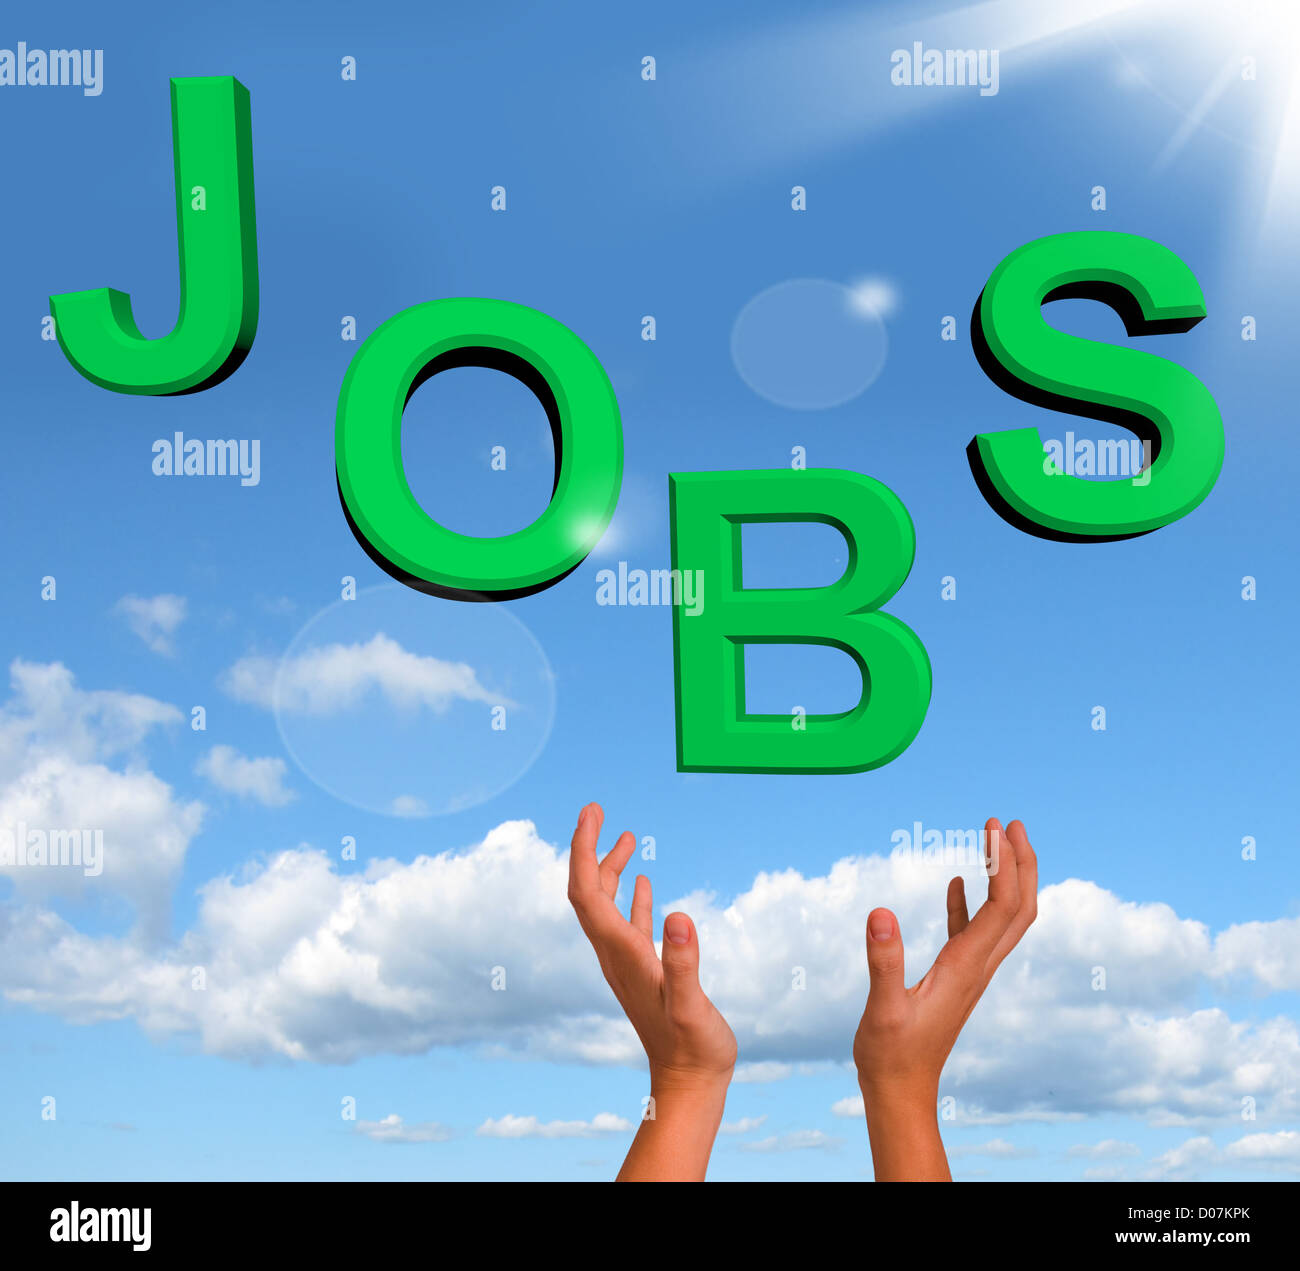 Catching Jobs Letters Showing Work And Careers - Stock Image